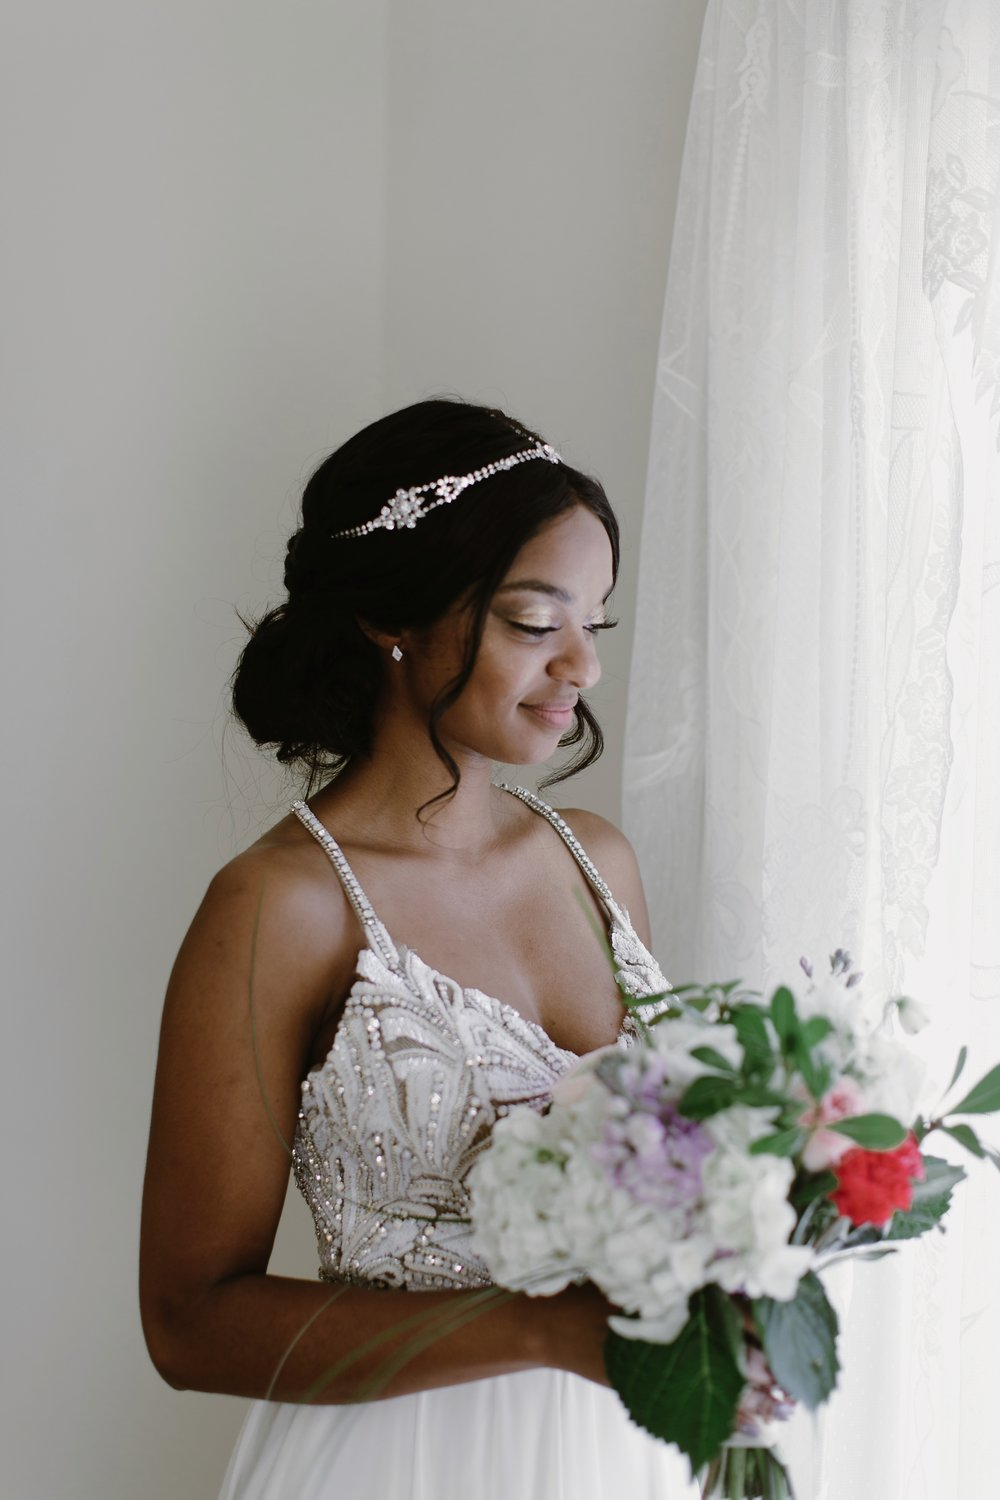 Elicia Bryan - This woman travels worldwide and I was grateful to meet her on this Syncere Bride's wedding day. Look at her impressive portfolio here.